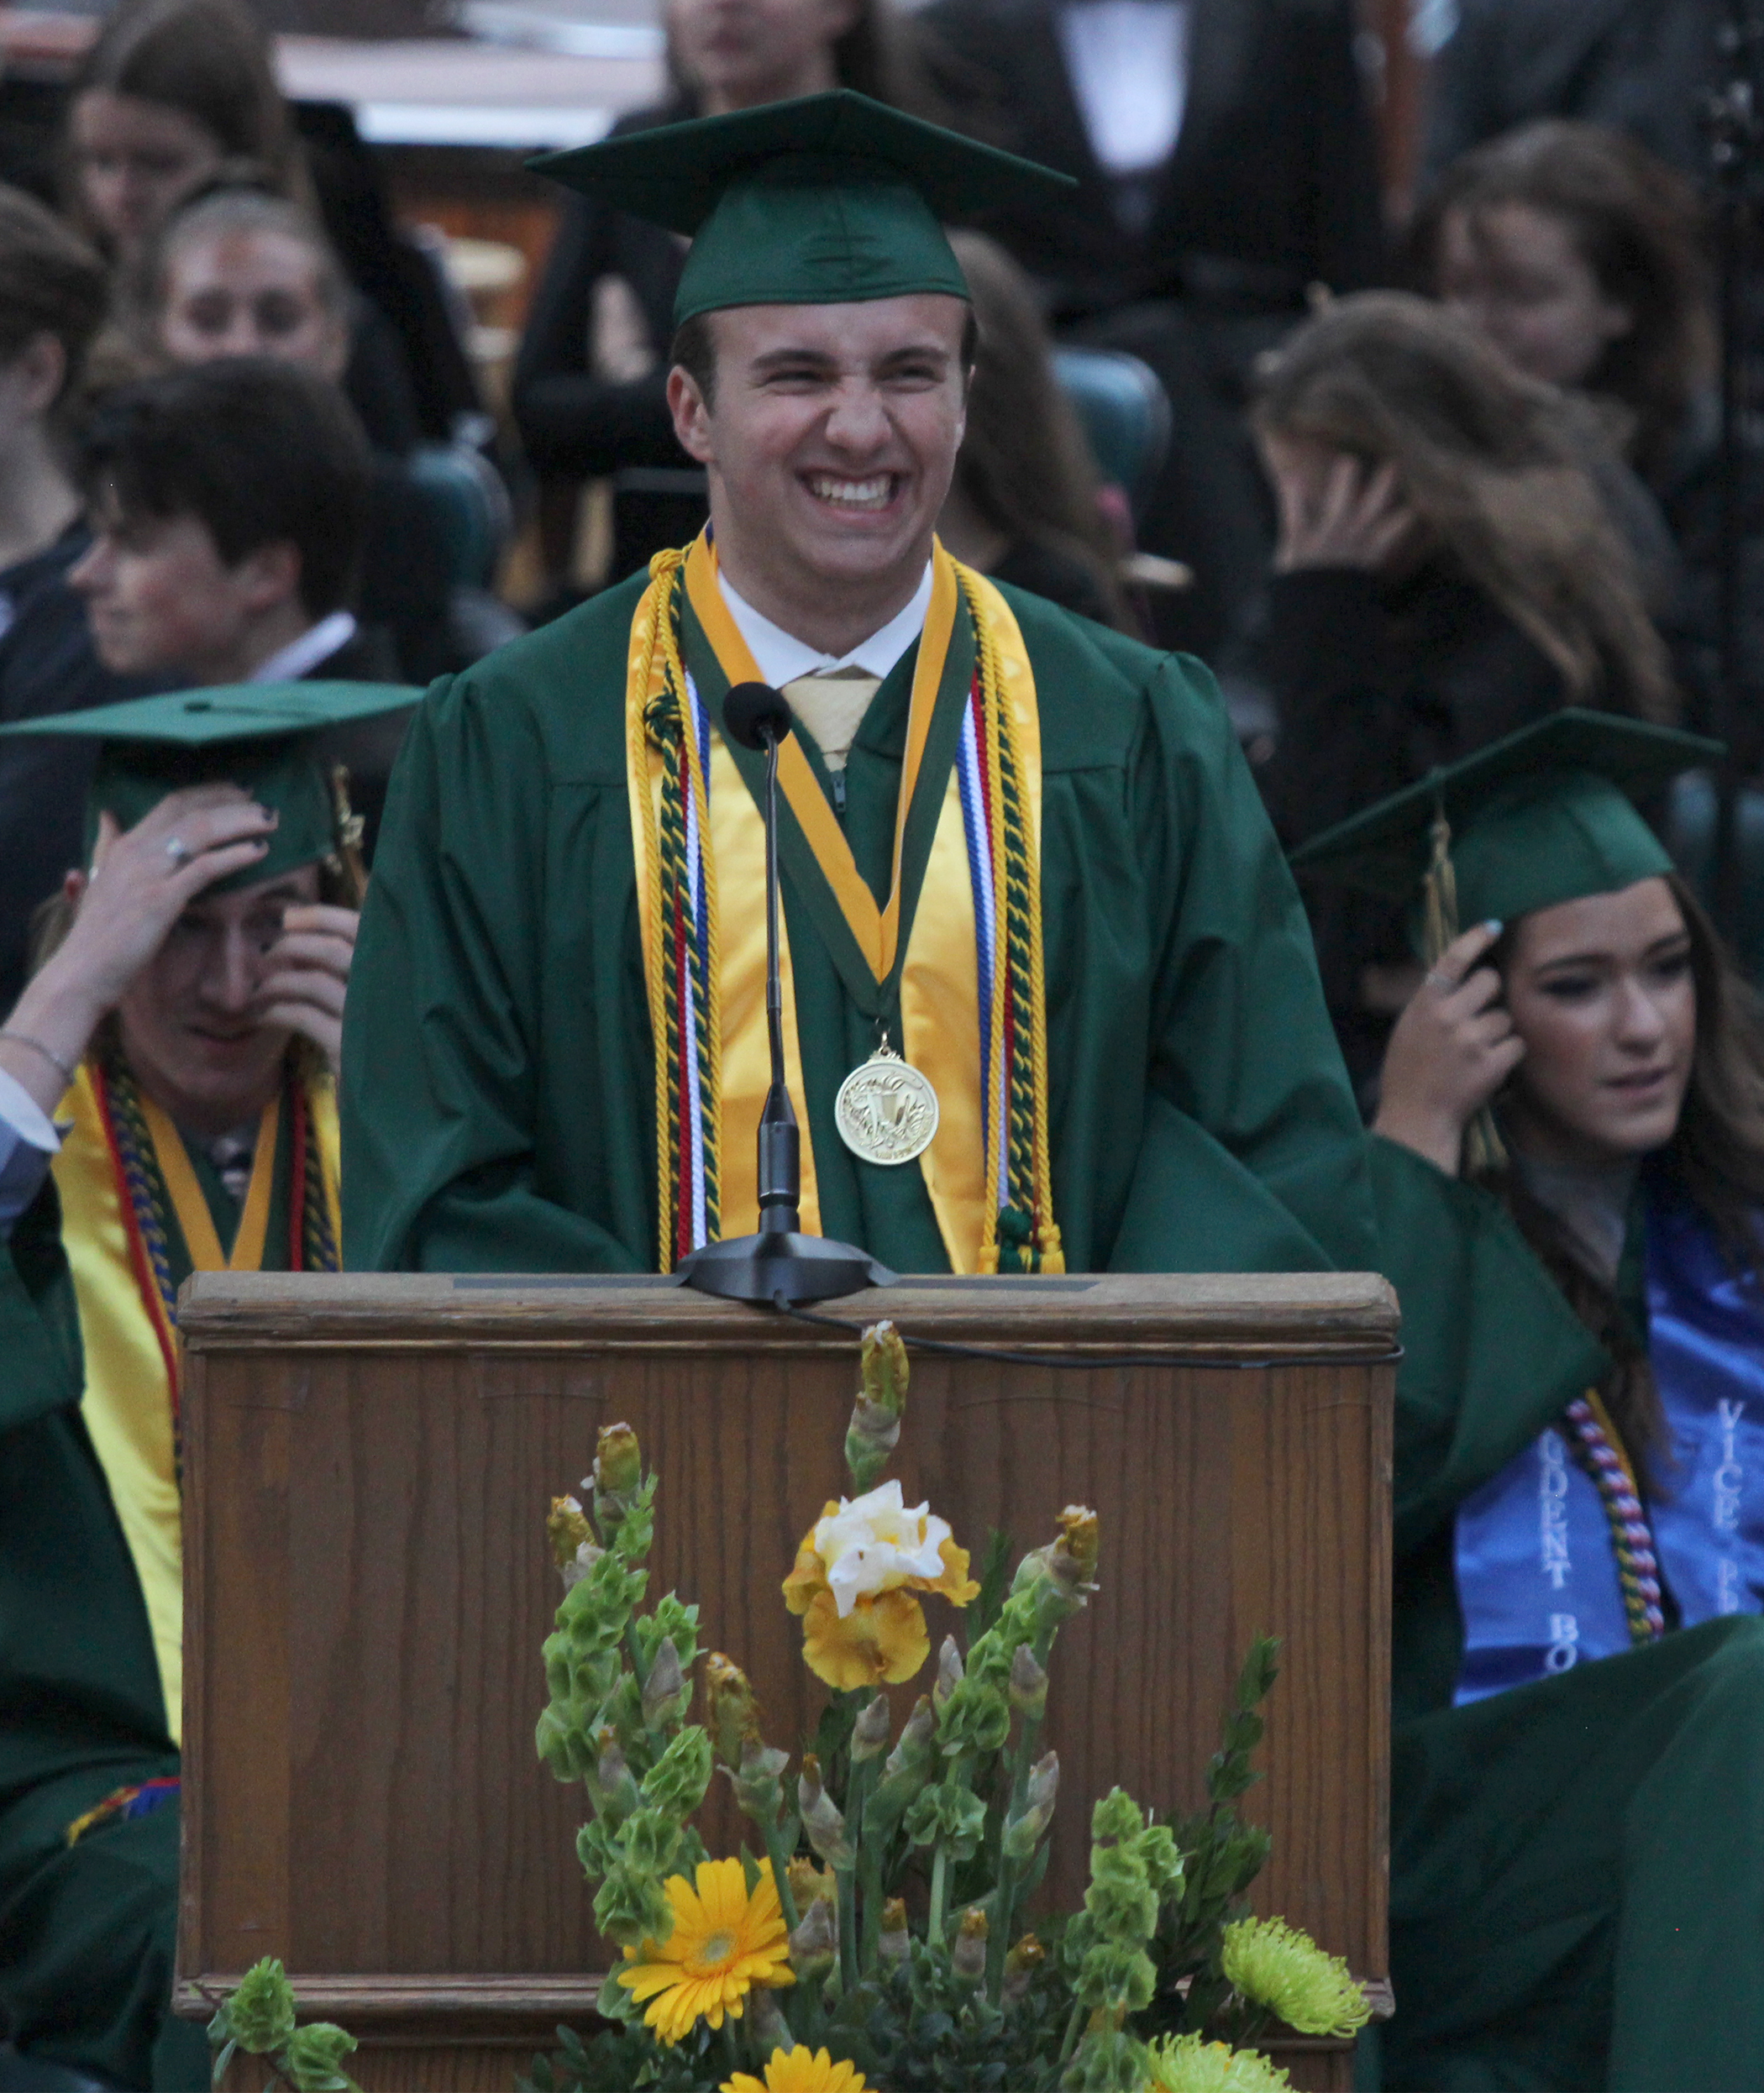 Senior and valedictorian Alec Yagey gives a compelling speech about high school and the education system at the 2017 Red Rocks graduation.